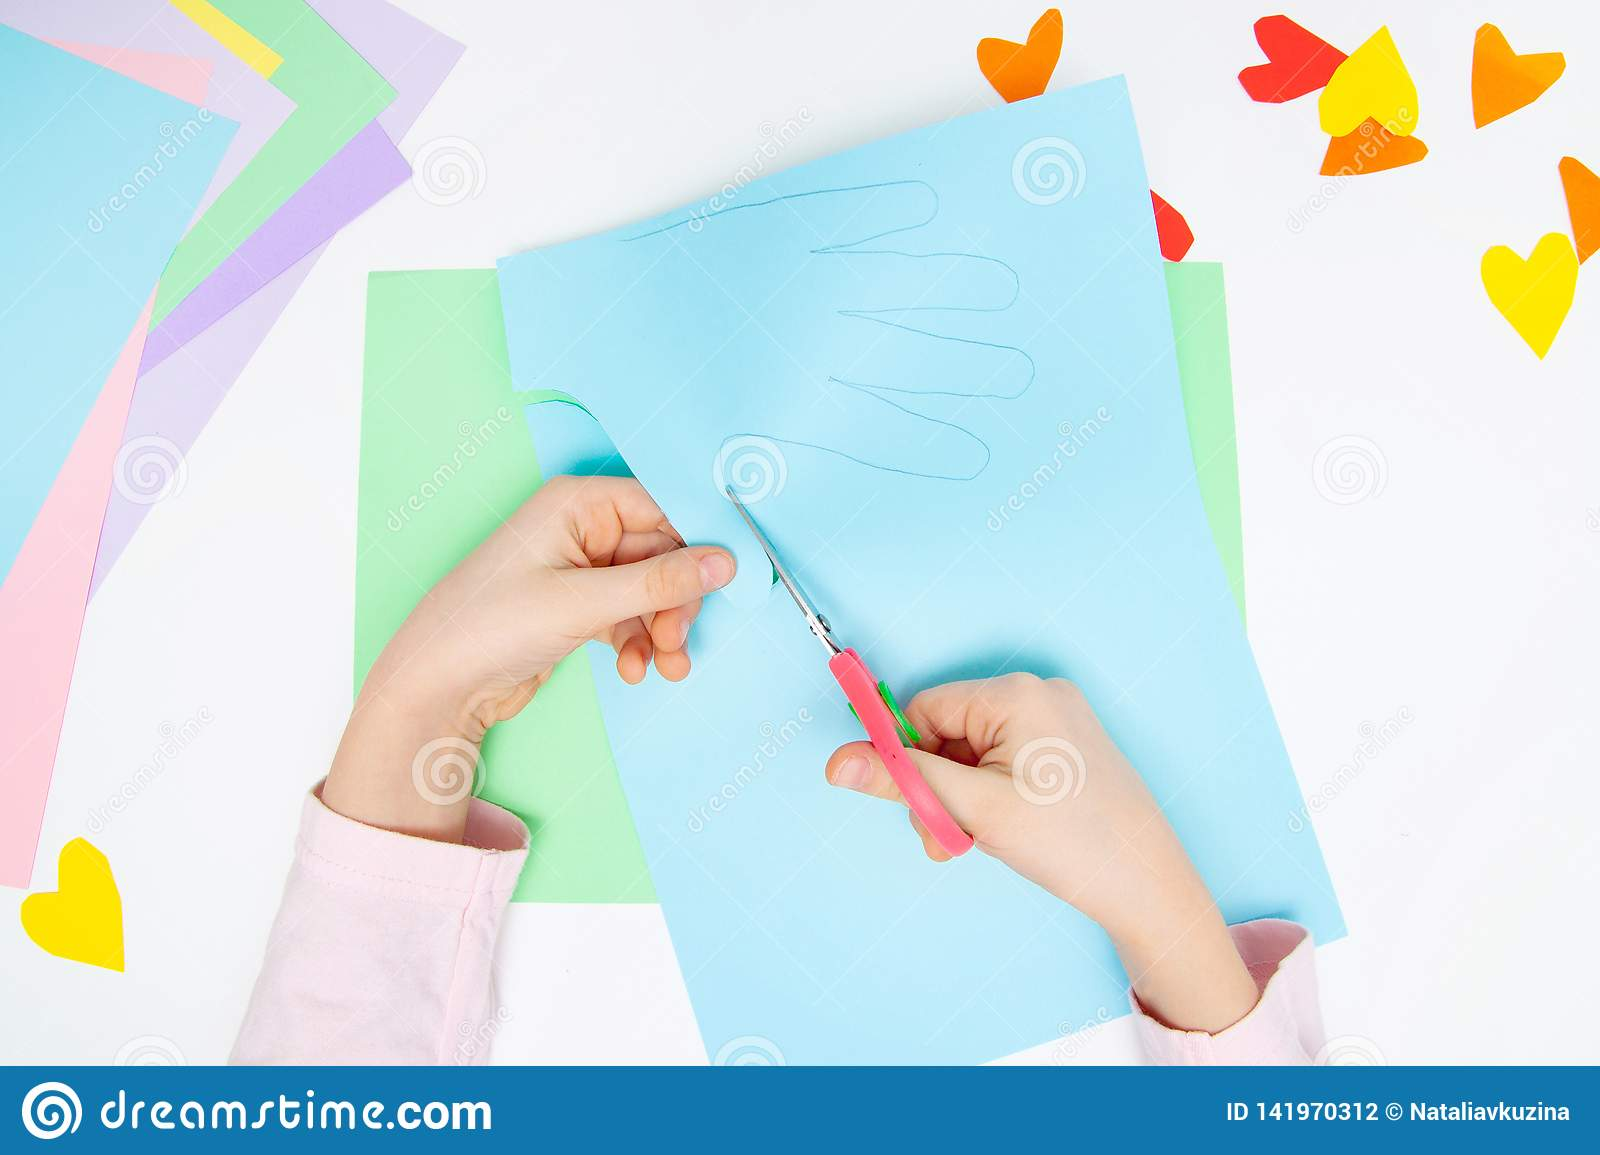 How to make paper bunny for Easter greetings and fun. Children art project. DIY concept. Kids hands makes paper craf. Step by step